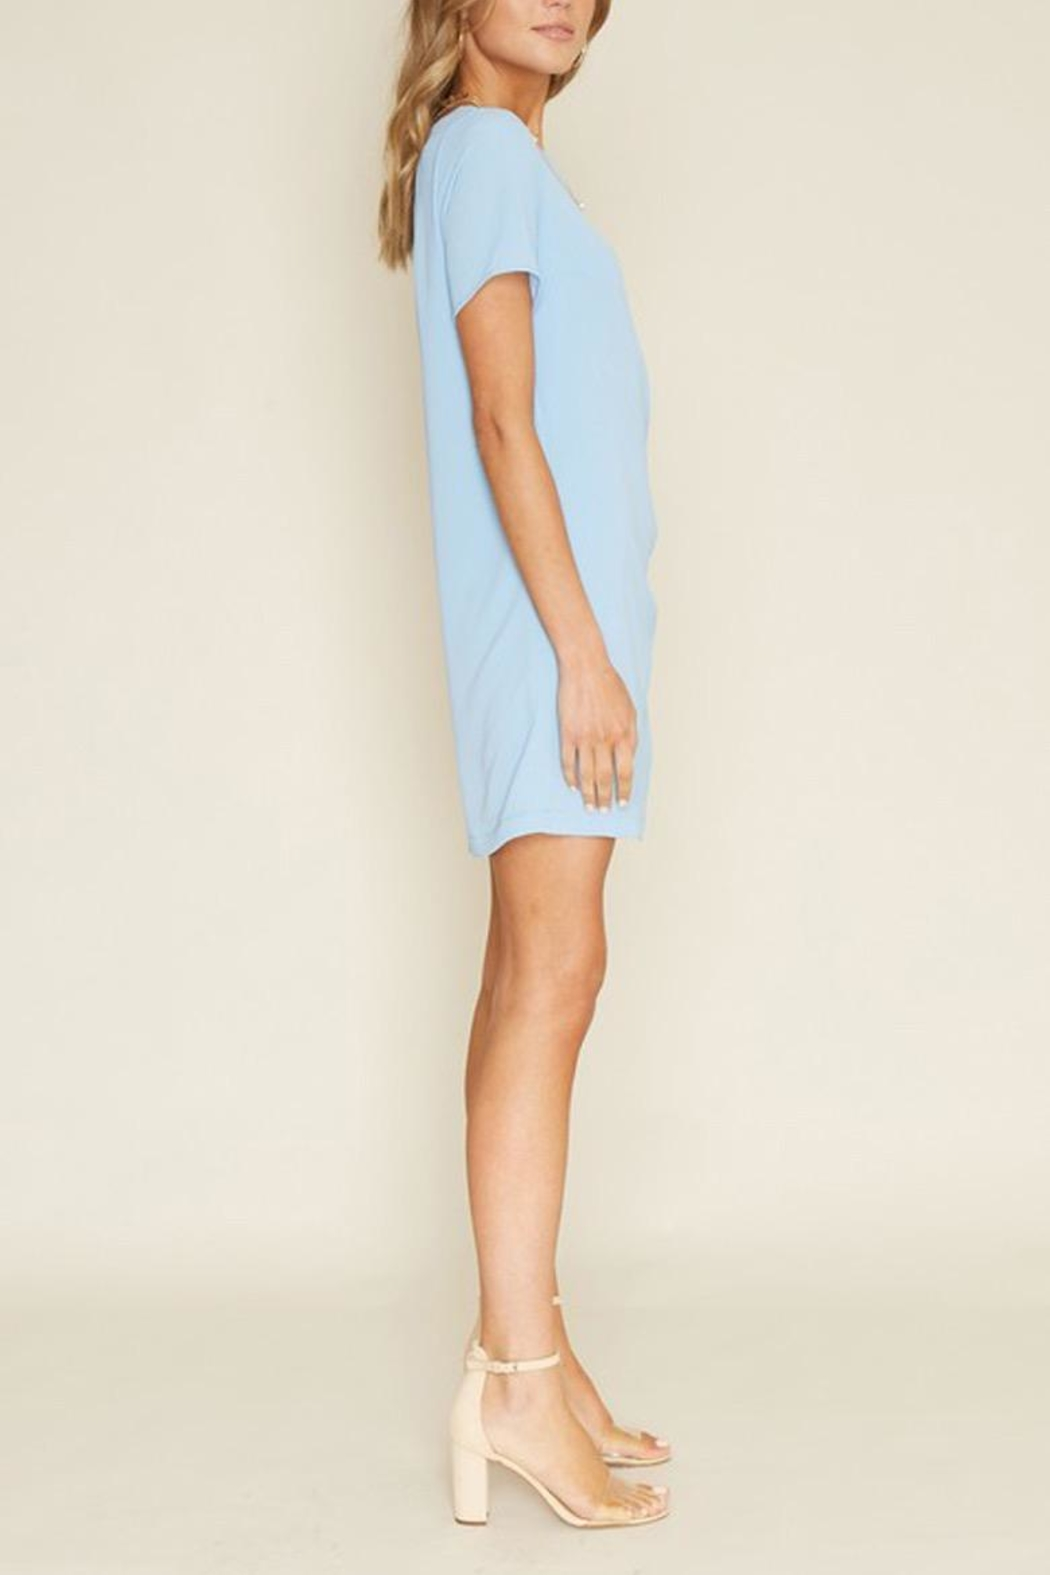 Dee Elly Blue Knot Shirt-Dress - Side Cropped Image